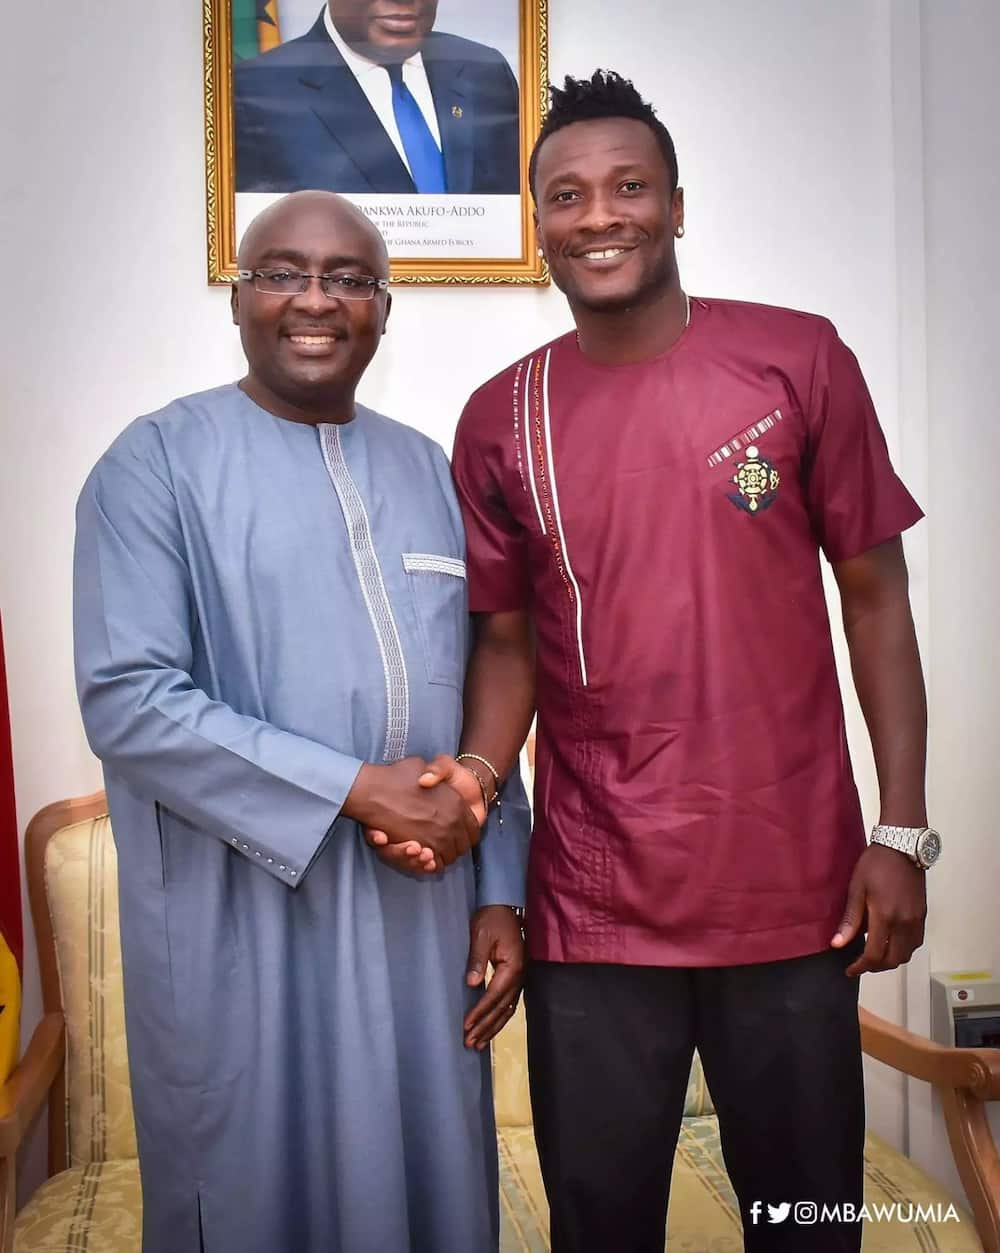 Photos: Asamoah Gyan spends time with Dr Bawumia at FlagStaff House